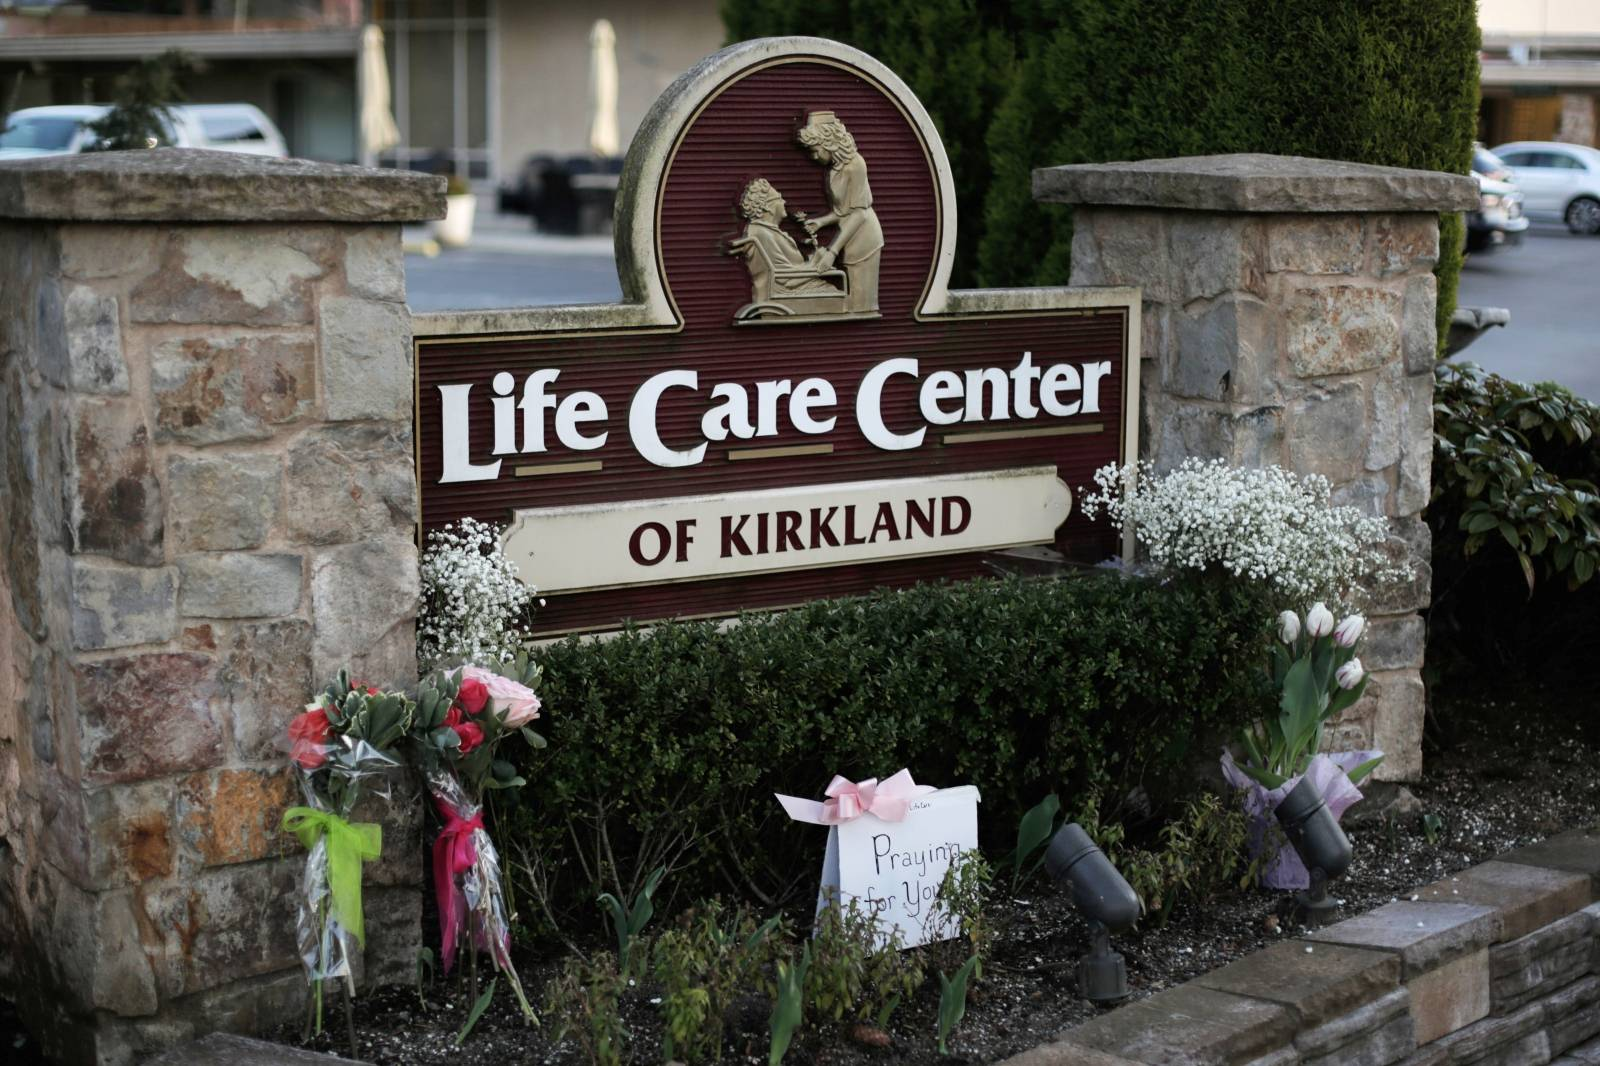 A homemade sign and flowers from community members are seen near the entrance to the Life Care Center of Kirkland